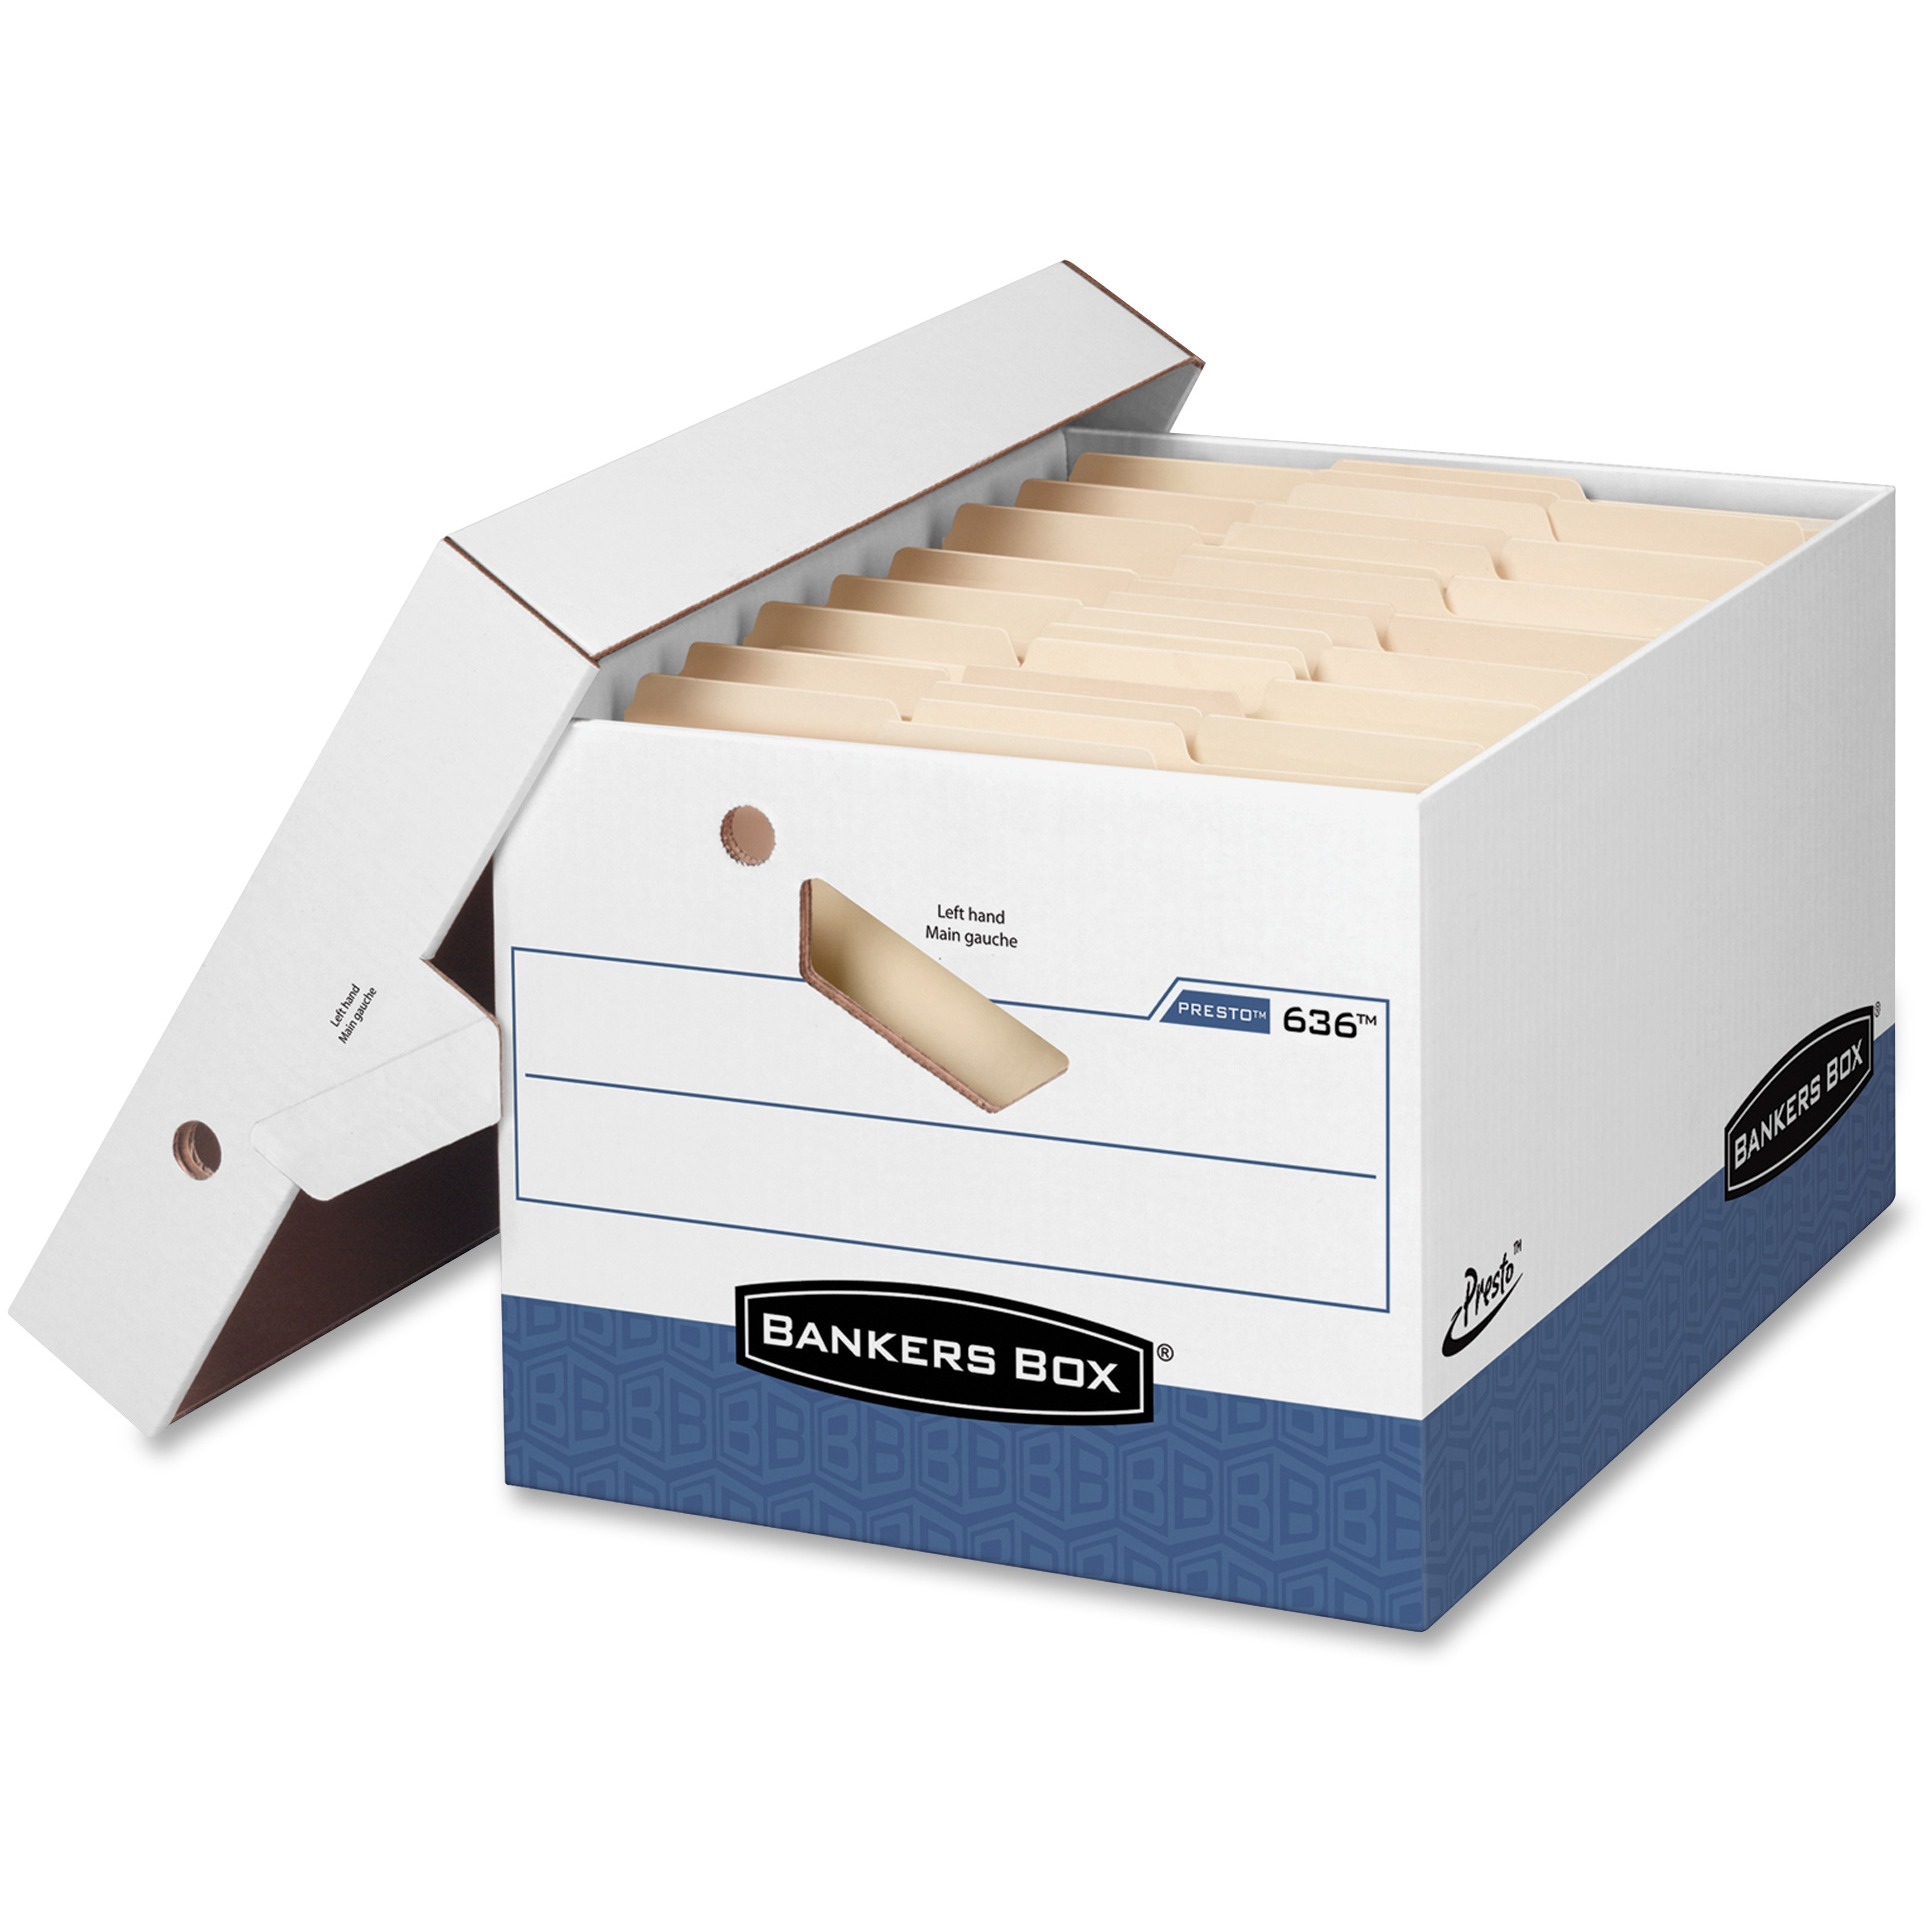 Bankers Box, FEL0063601, Presto Storage Box, Kraft,Blue